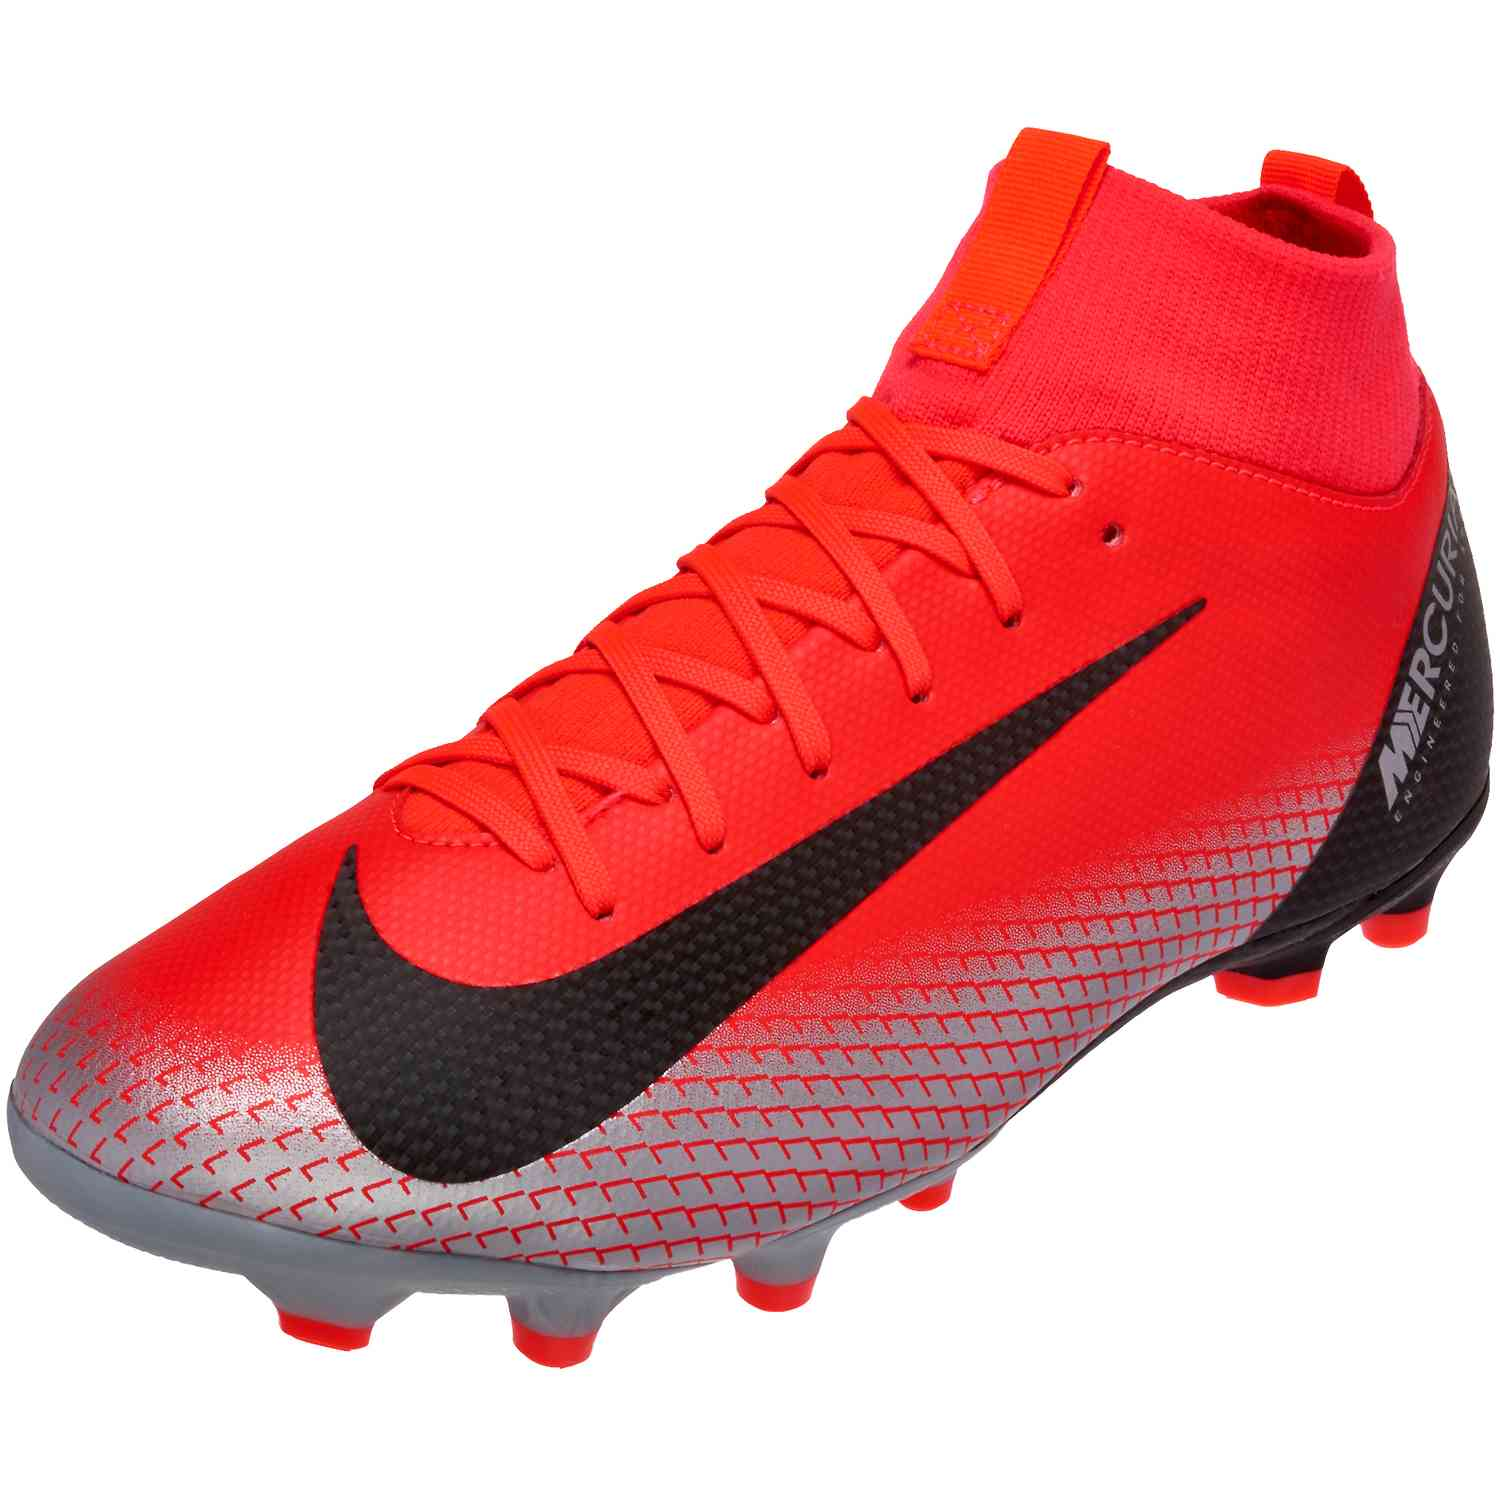 newest b0bce 04700 Kids Nike Mercurial Superfly 6 Academy FG - CR7 - Bright ...